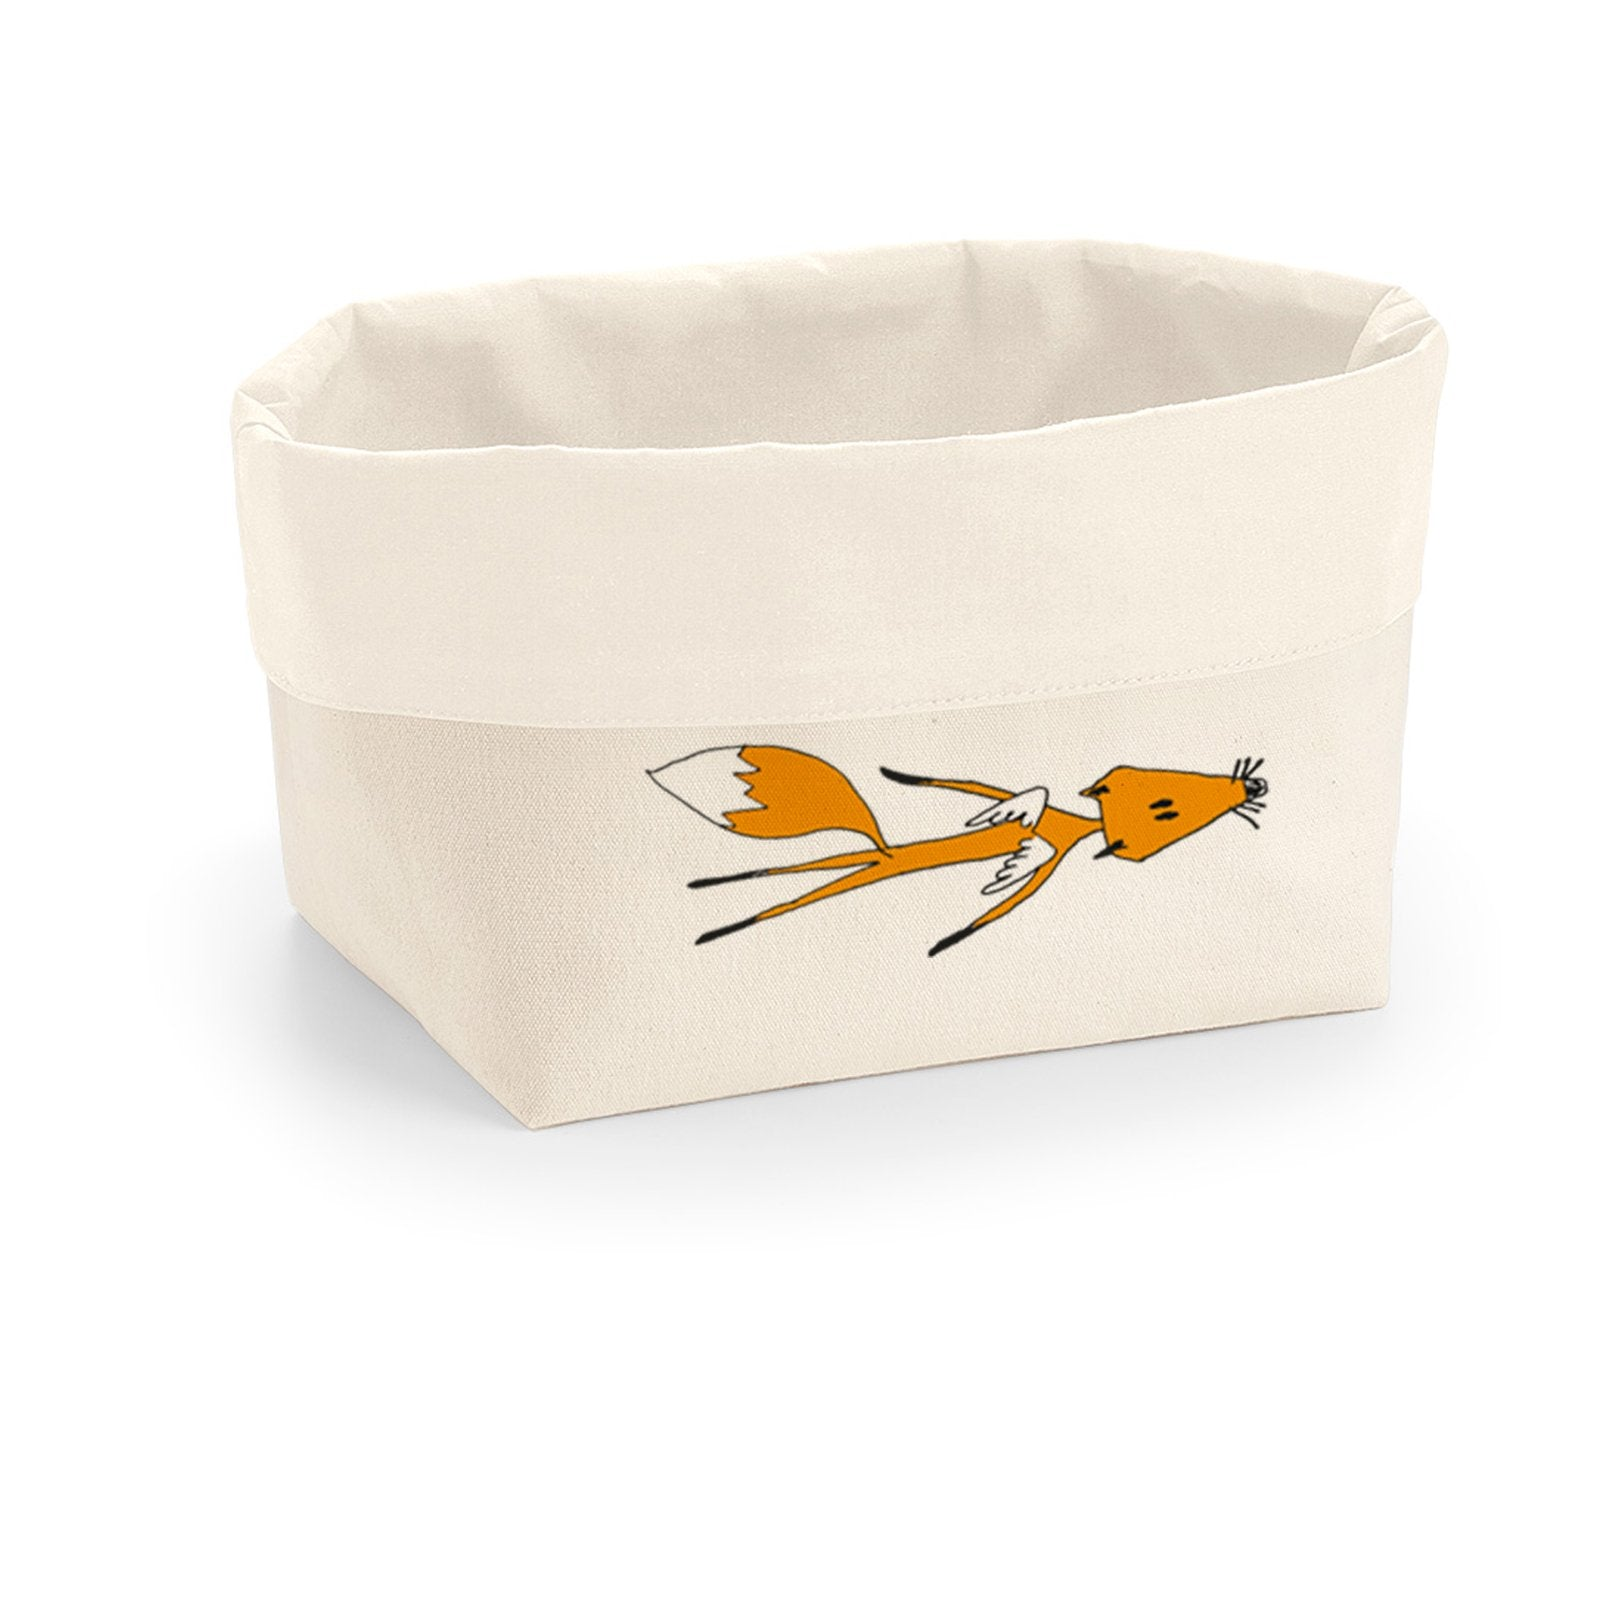 Canvas Organiser - Canvas Organiser, Flying Fox